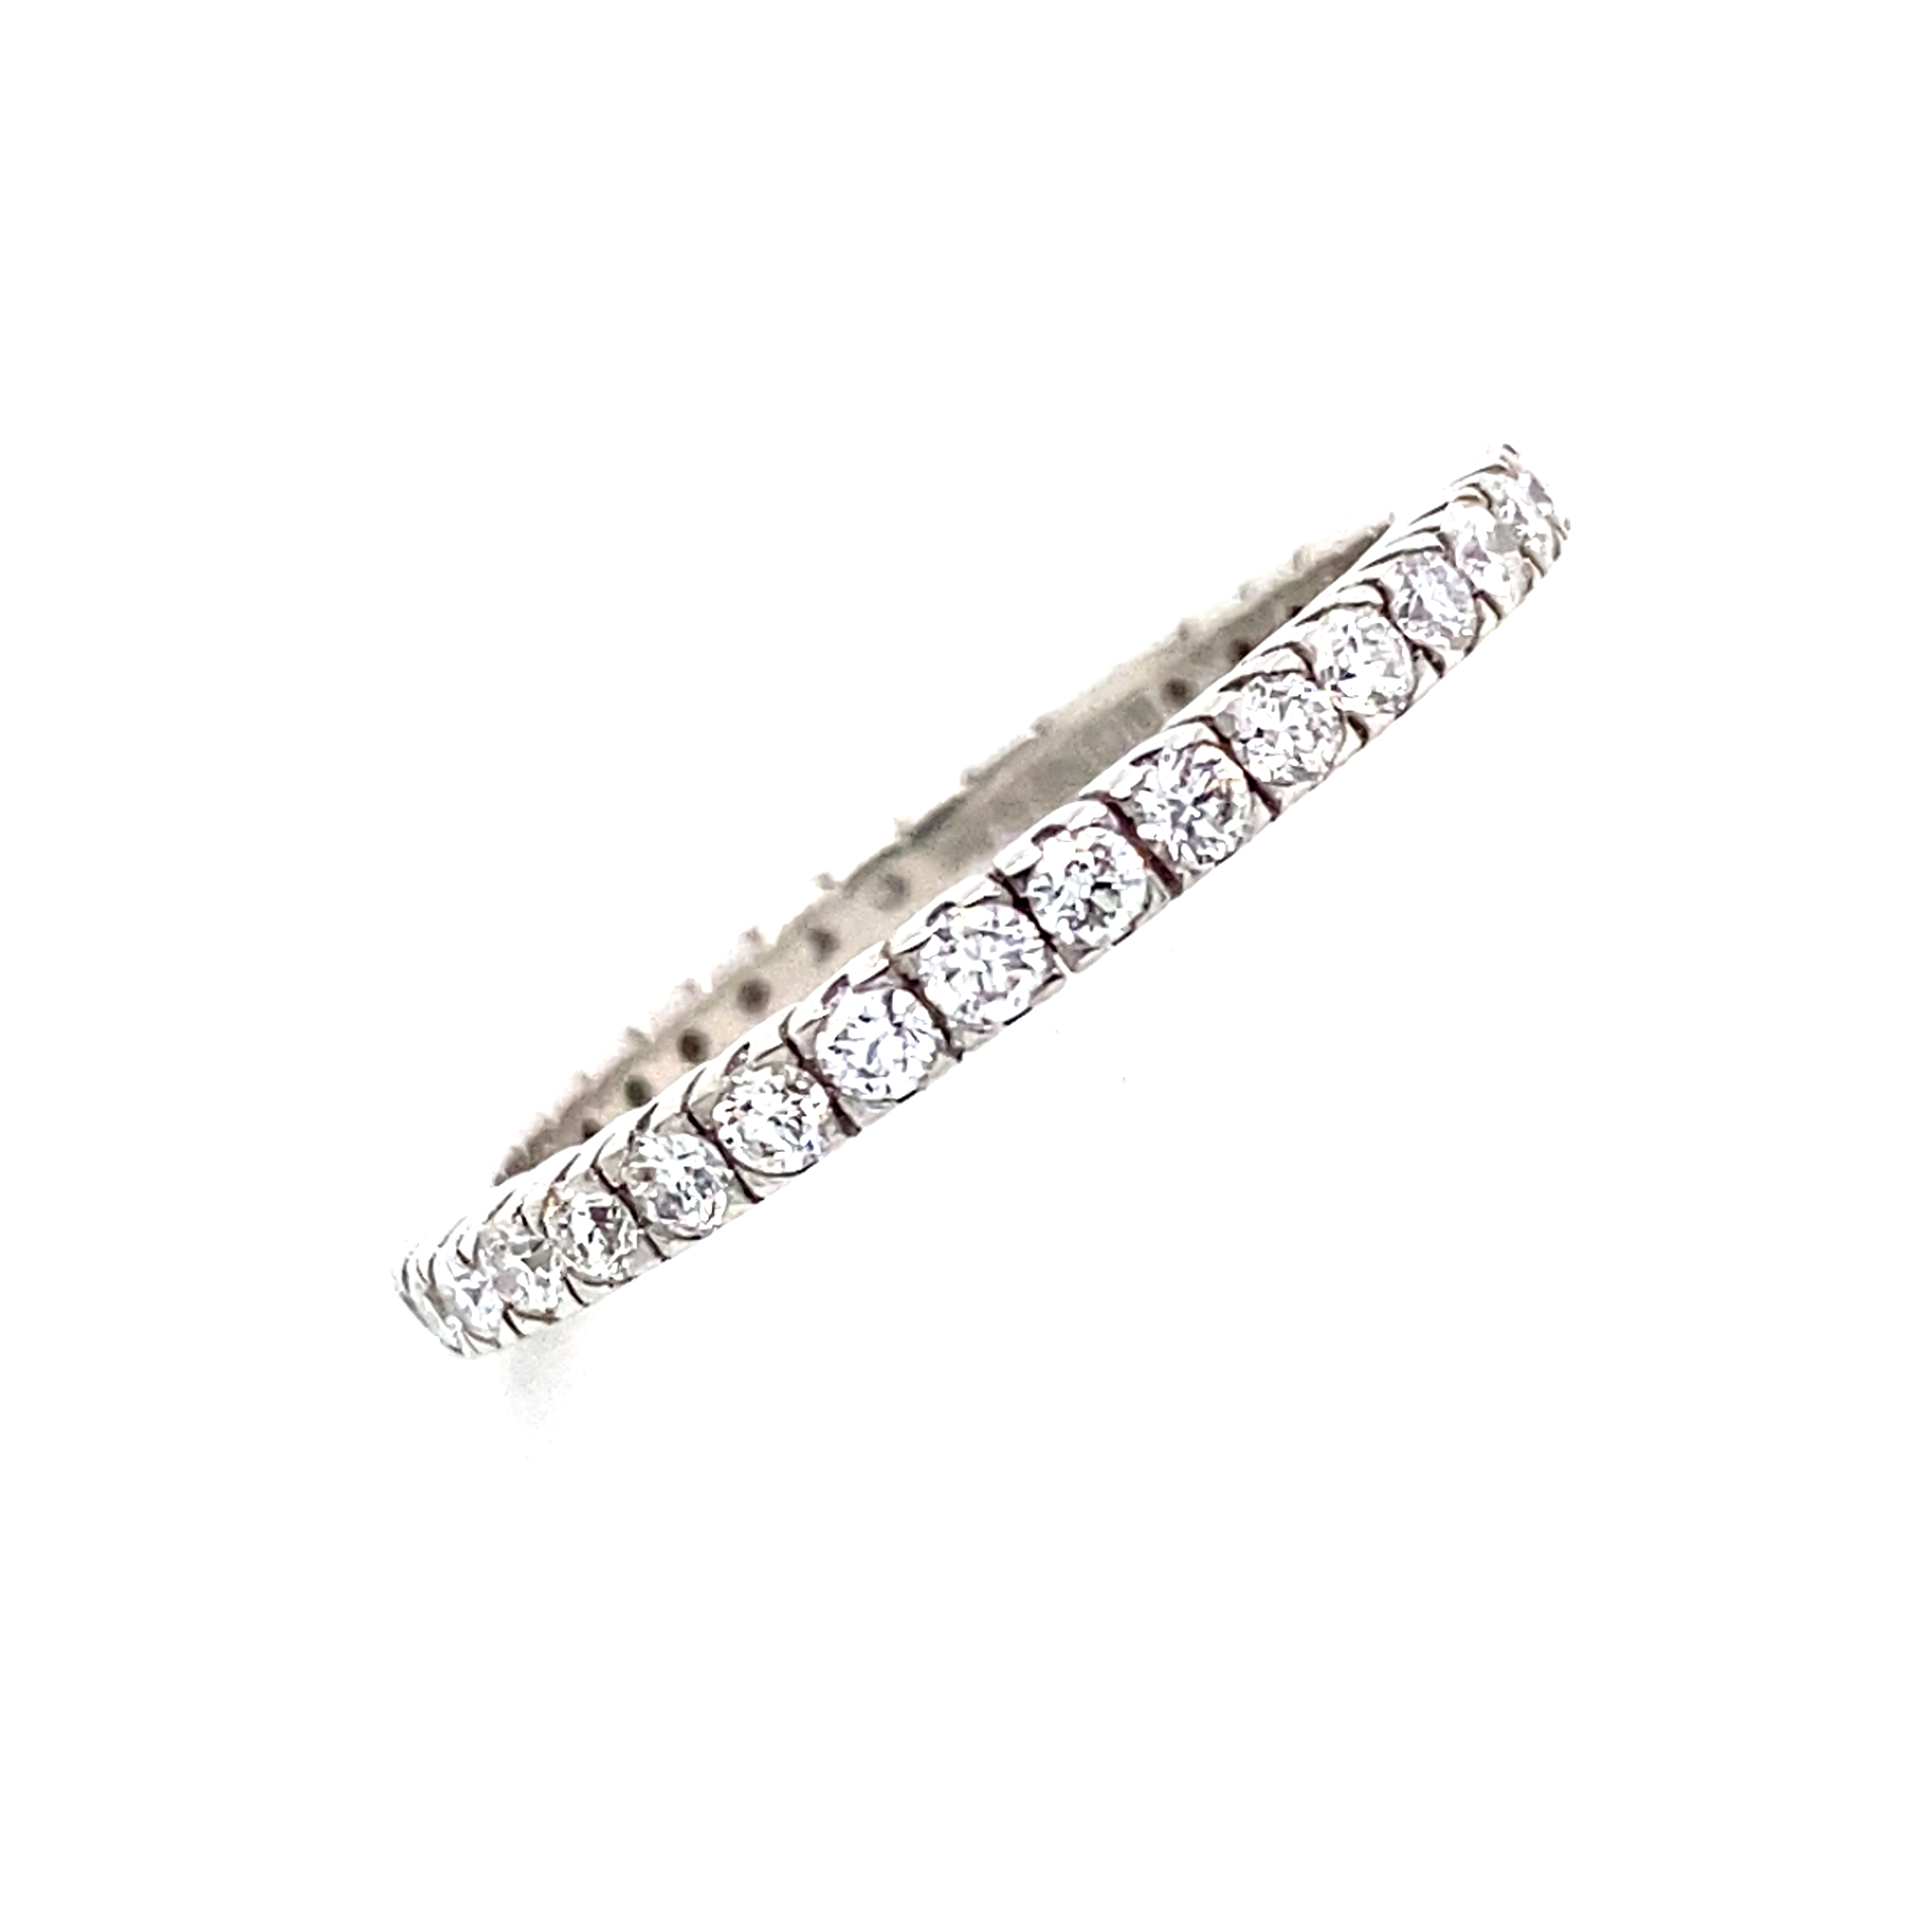 Platinum full Eternity Ring in a Castle setting 0.60 Carats GVS